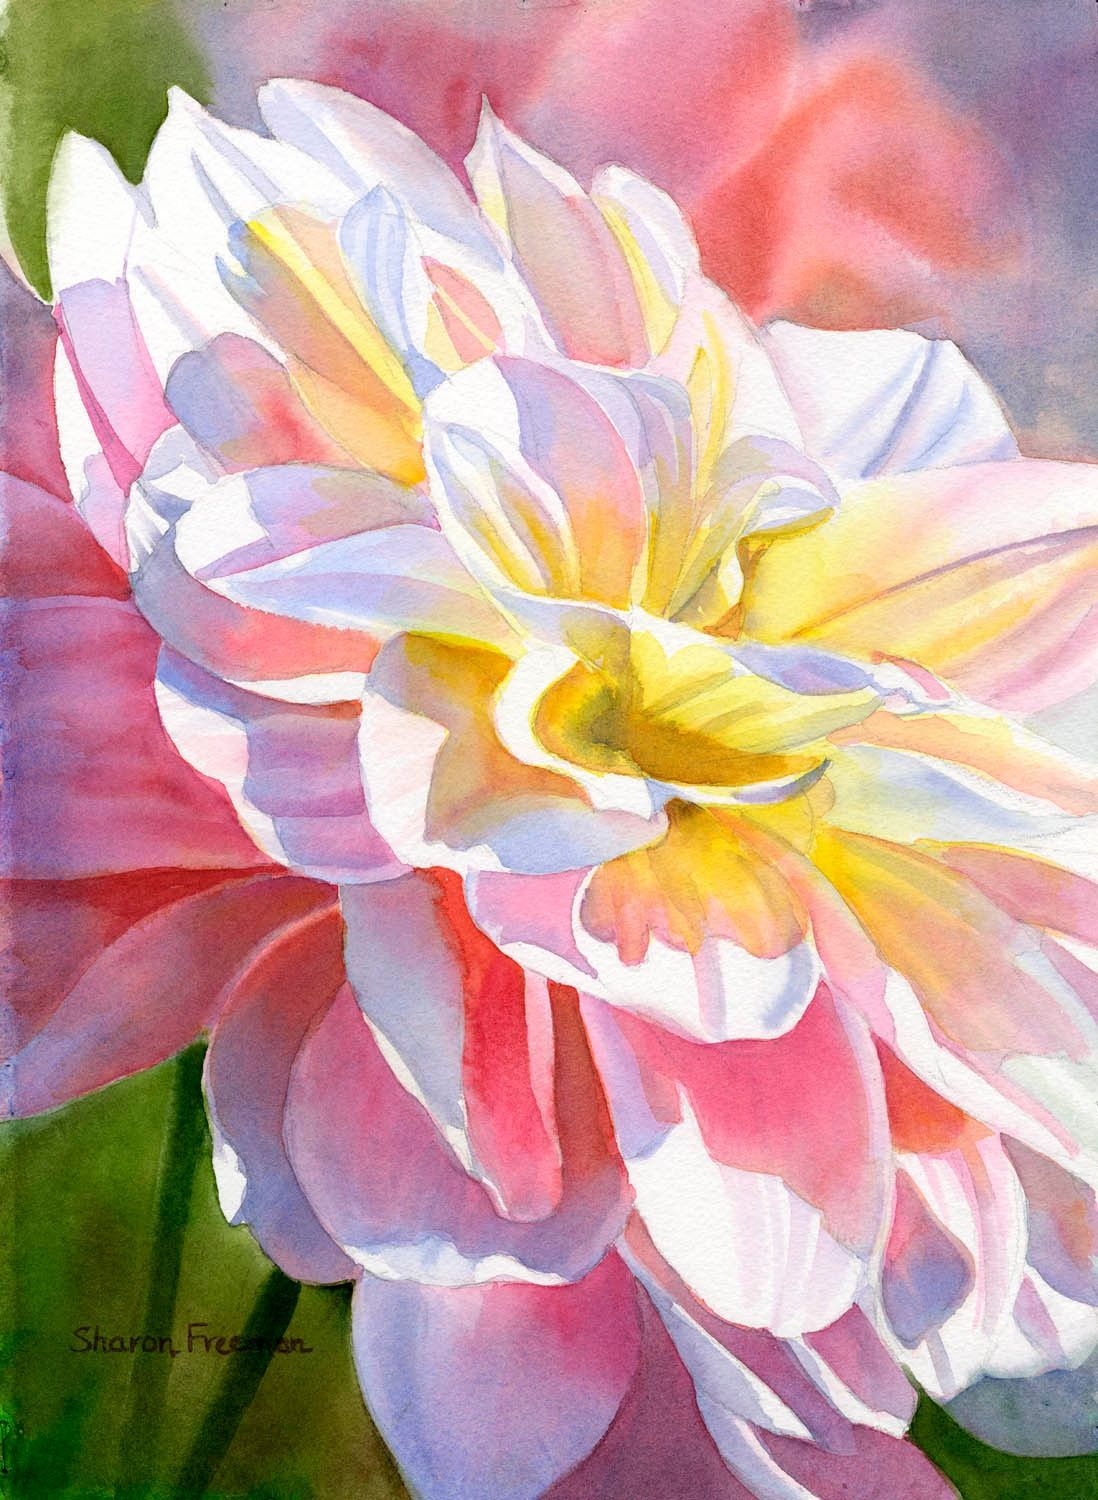 Flower gleam and glow watercolor pinterest flower watercolor peach and yellow dahlia painting by sharon freeman peach and yellow dahlia fine art prints and posters for sale beautiful flower illustration izmirmasajfo